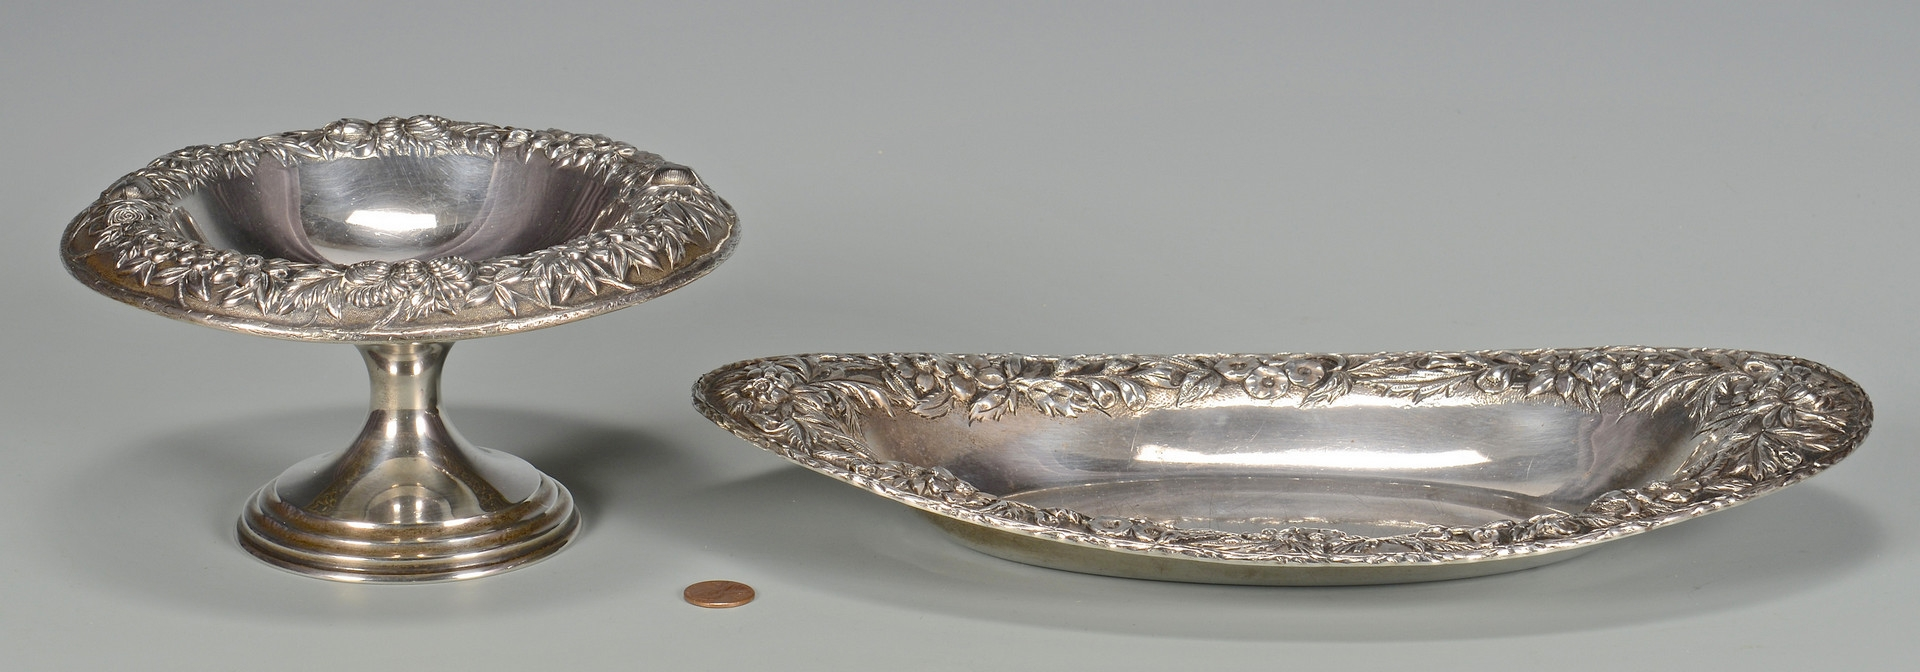 Lot 250: Kirk Repousse Bread Tray, Compote